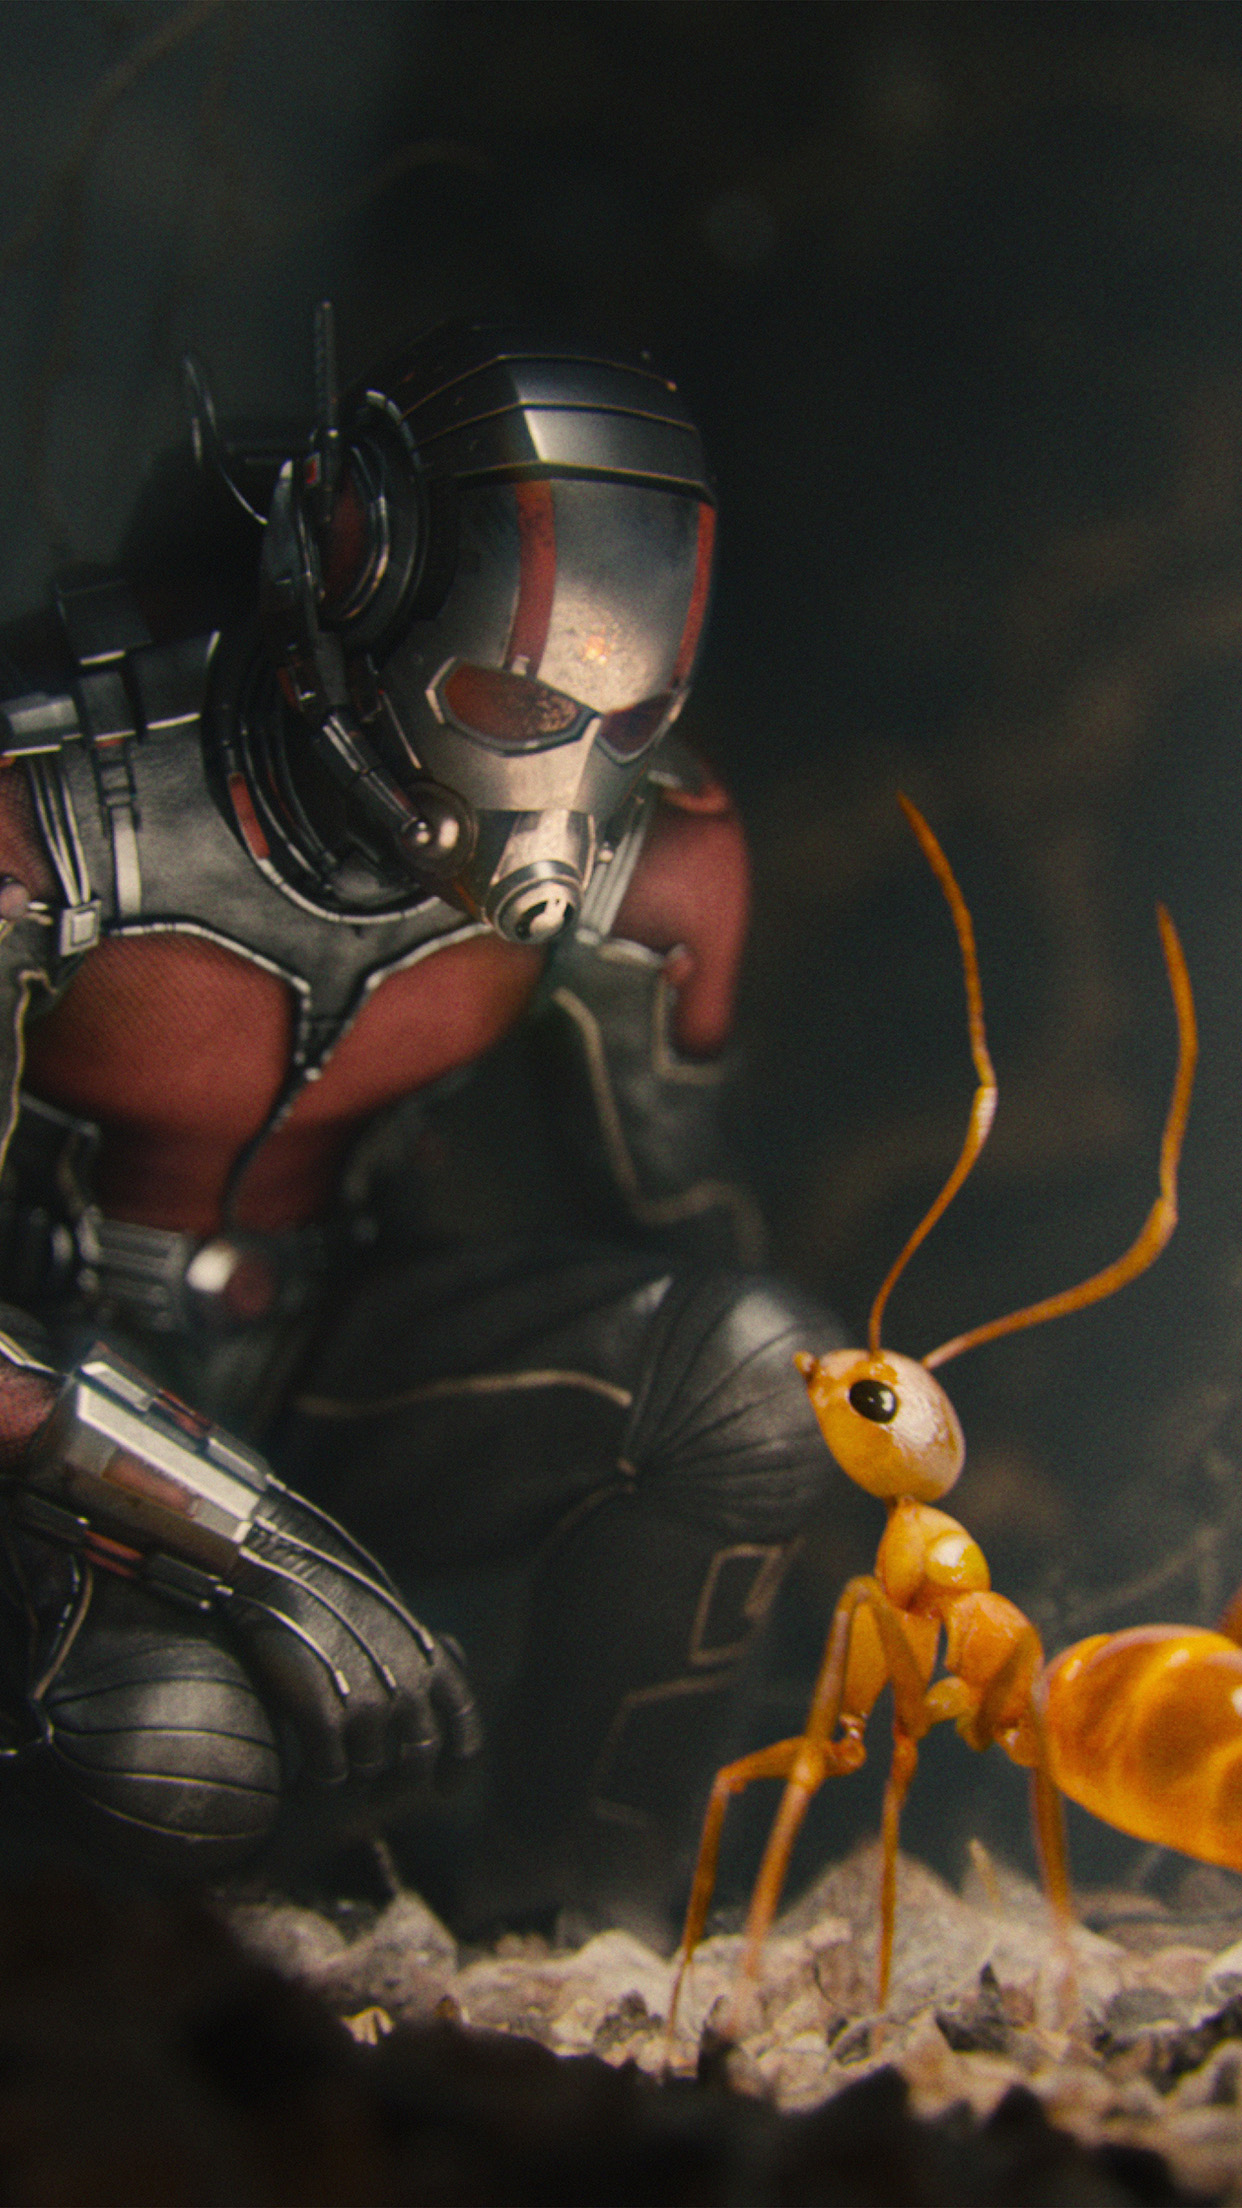 Marvel Antman Metts Ant Film Art Illustration Android wallpaper